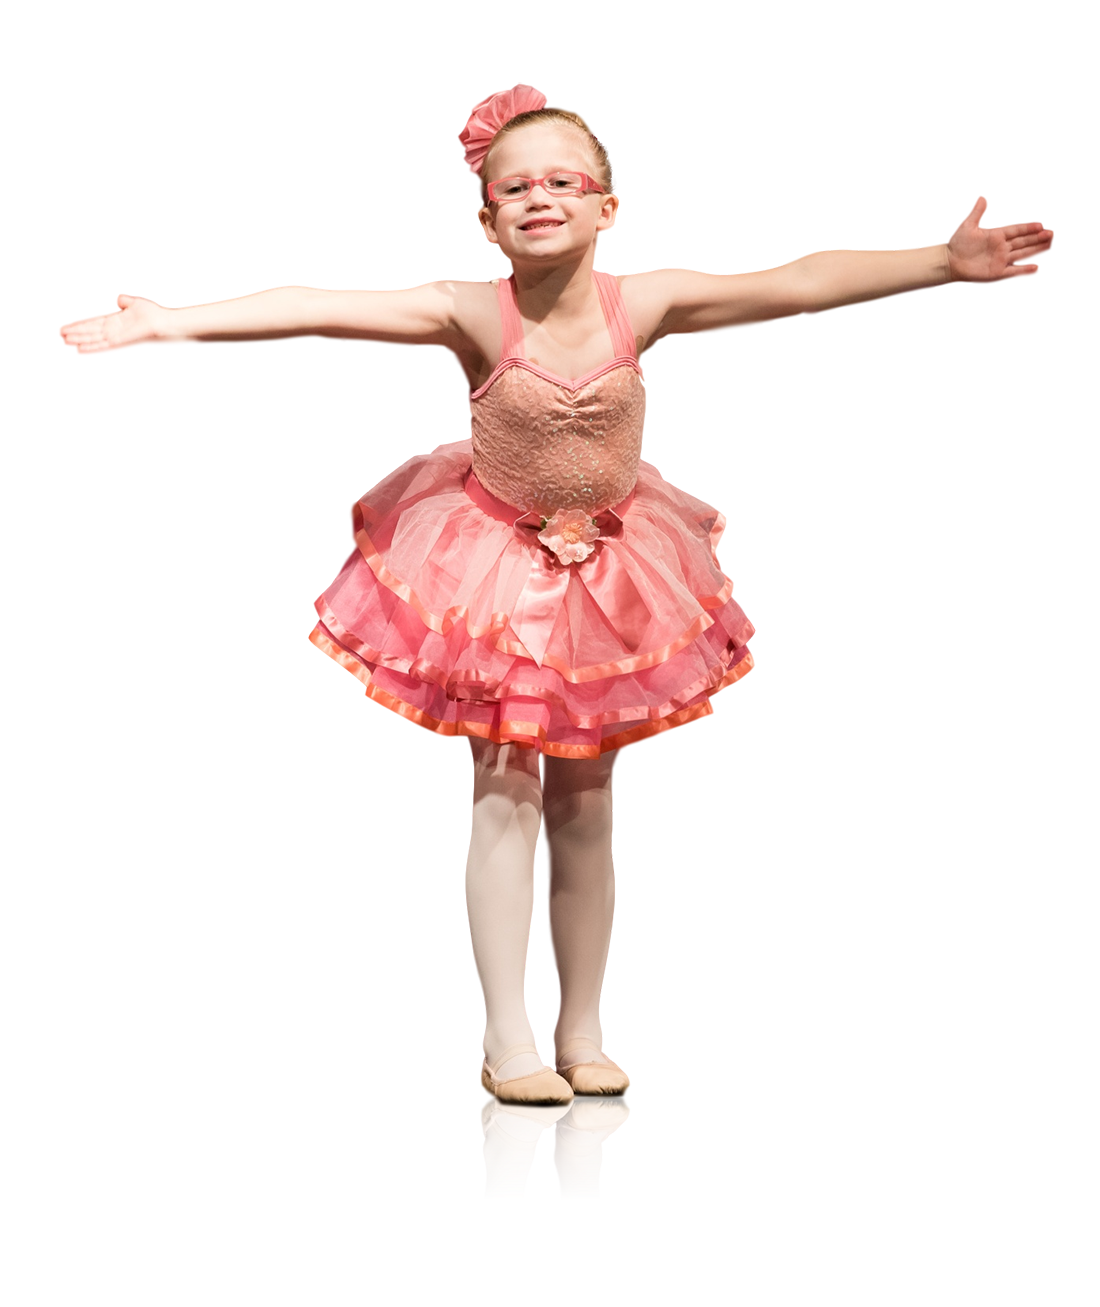 Young ballerina blowing a kiss